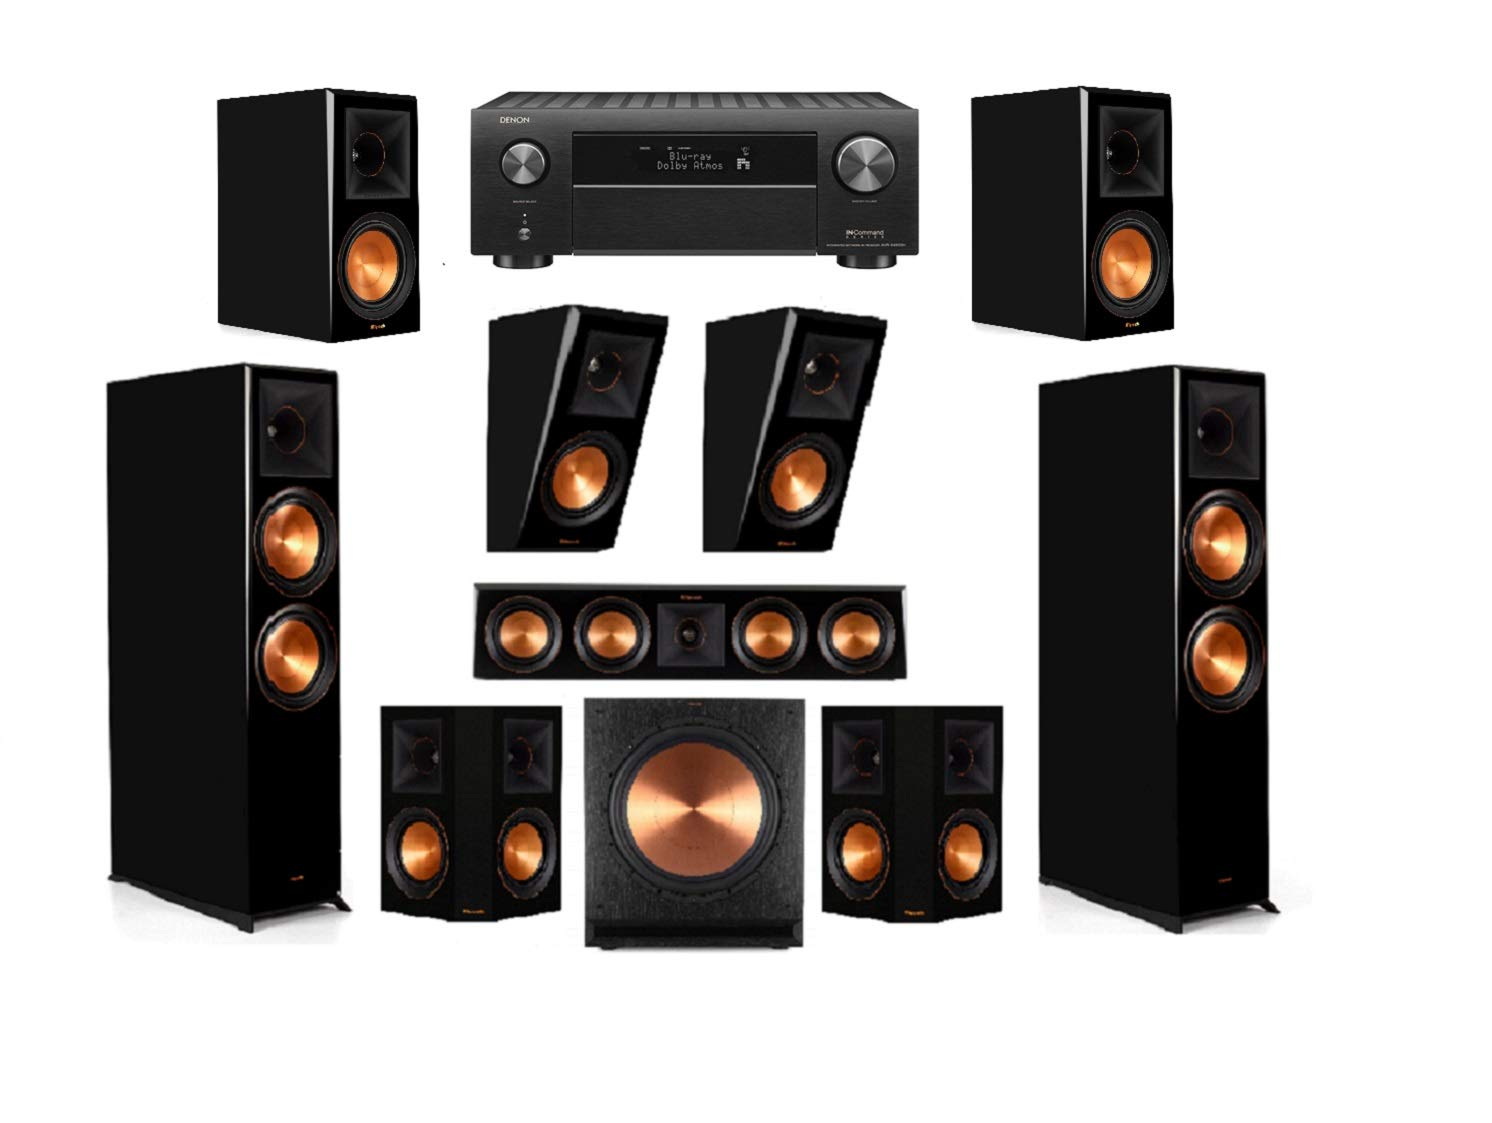 Klipsch RP-8060FA Piano Black 7.1.2 Dolby Atmos Home Theater System with AVR-X4500H Receiver